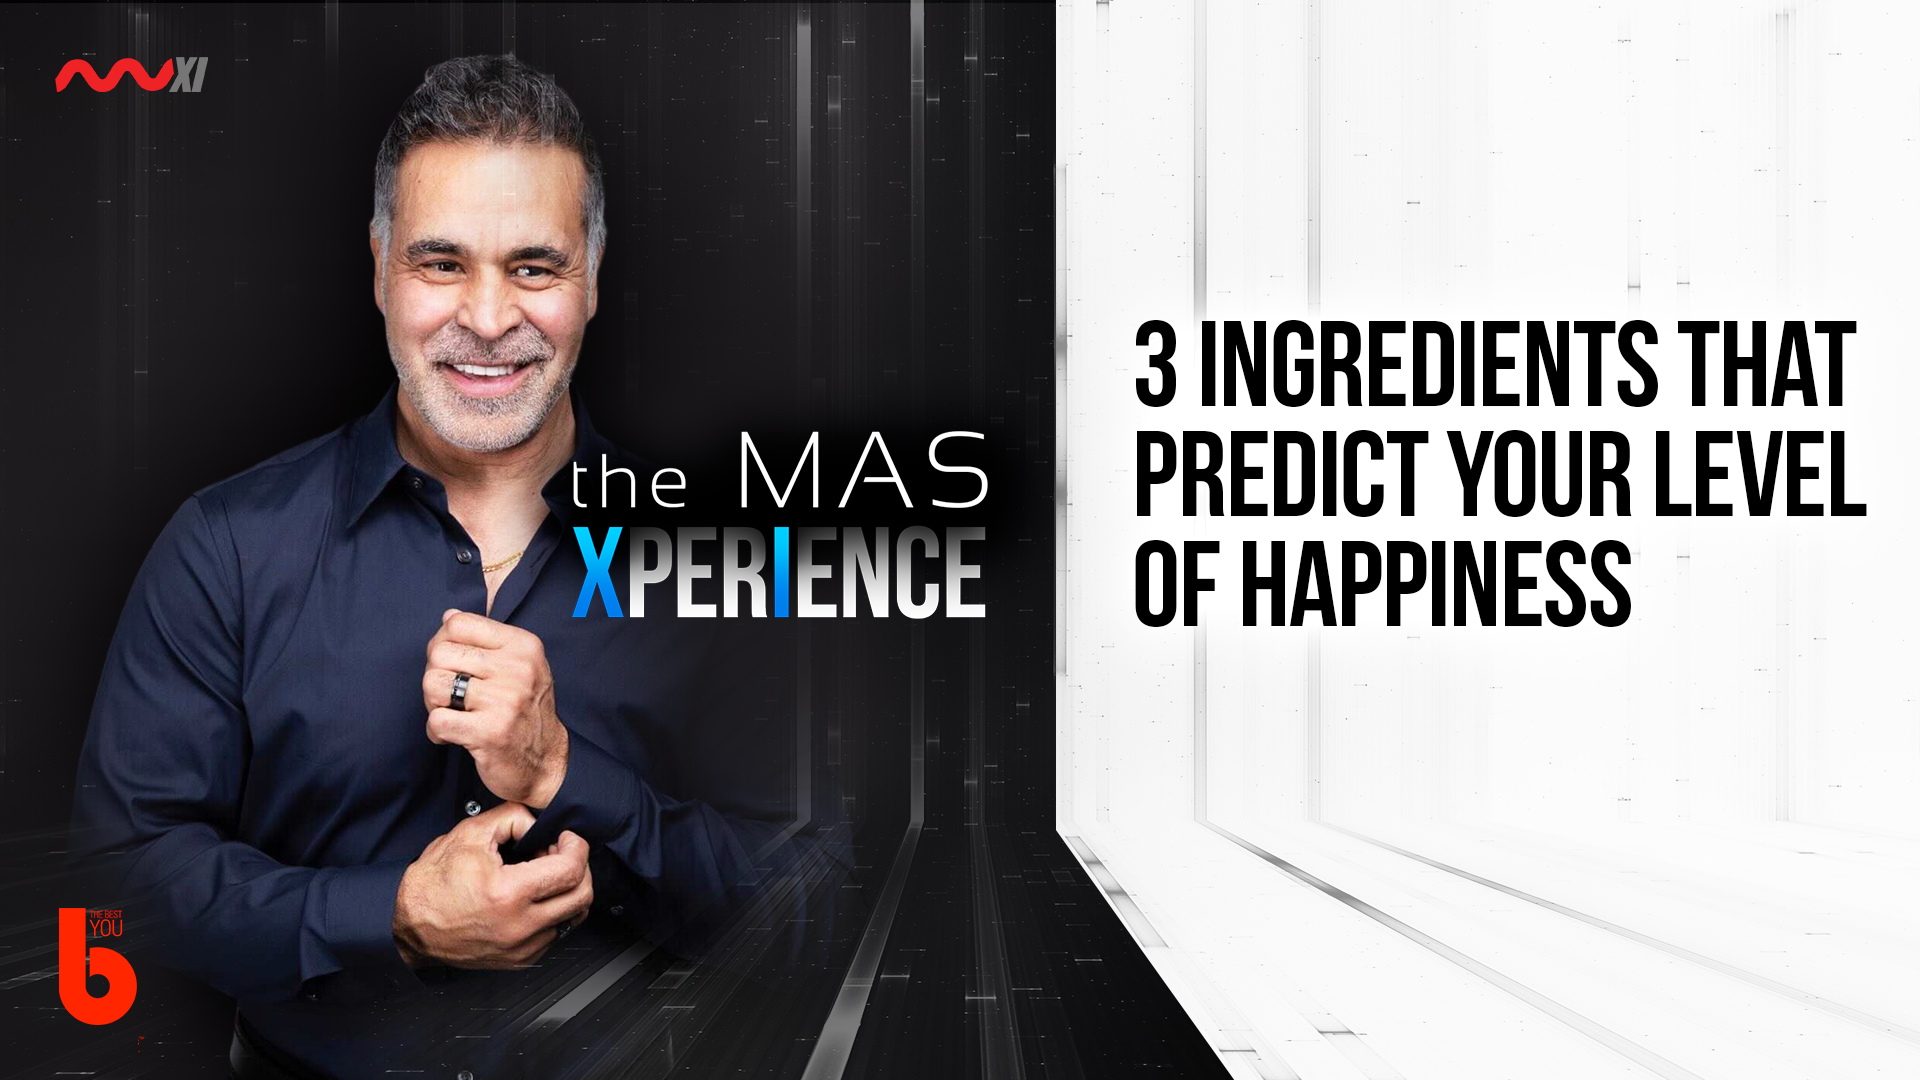 3 Ingredients that Predict Your Level of Happiness